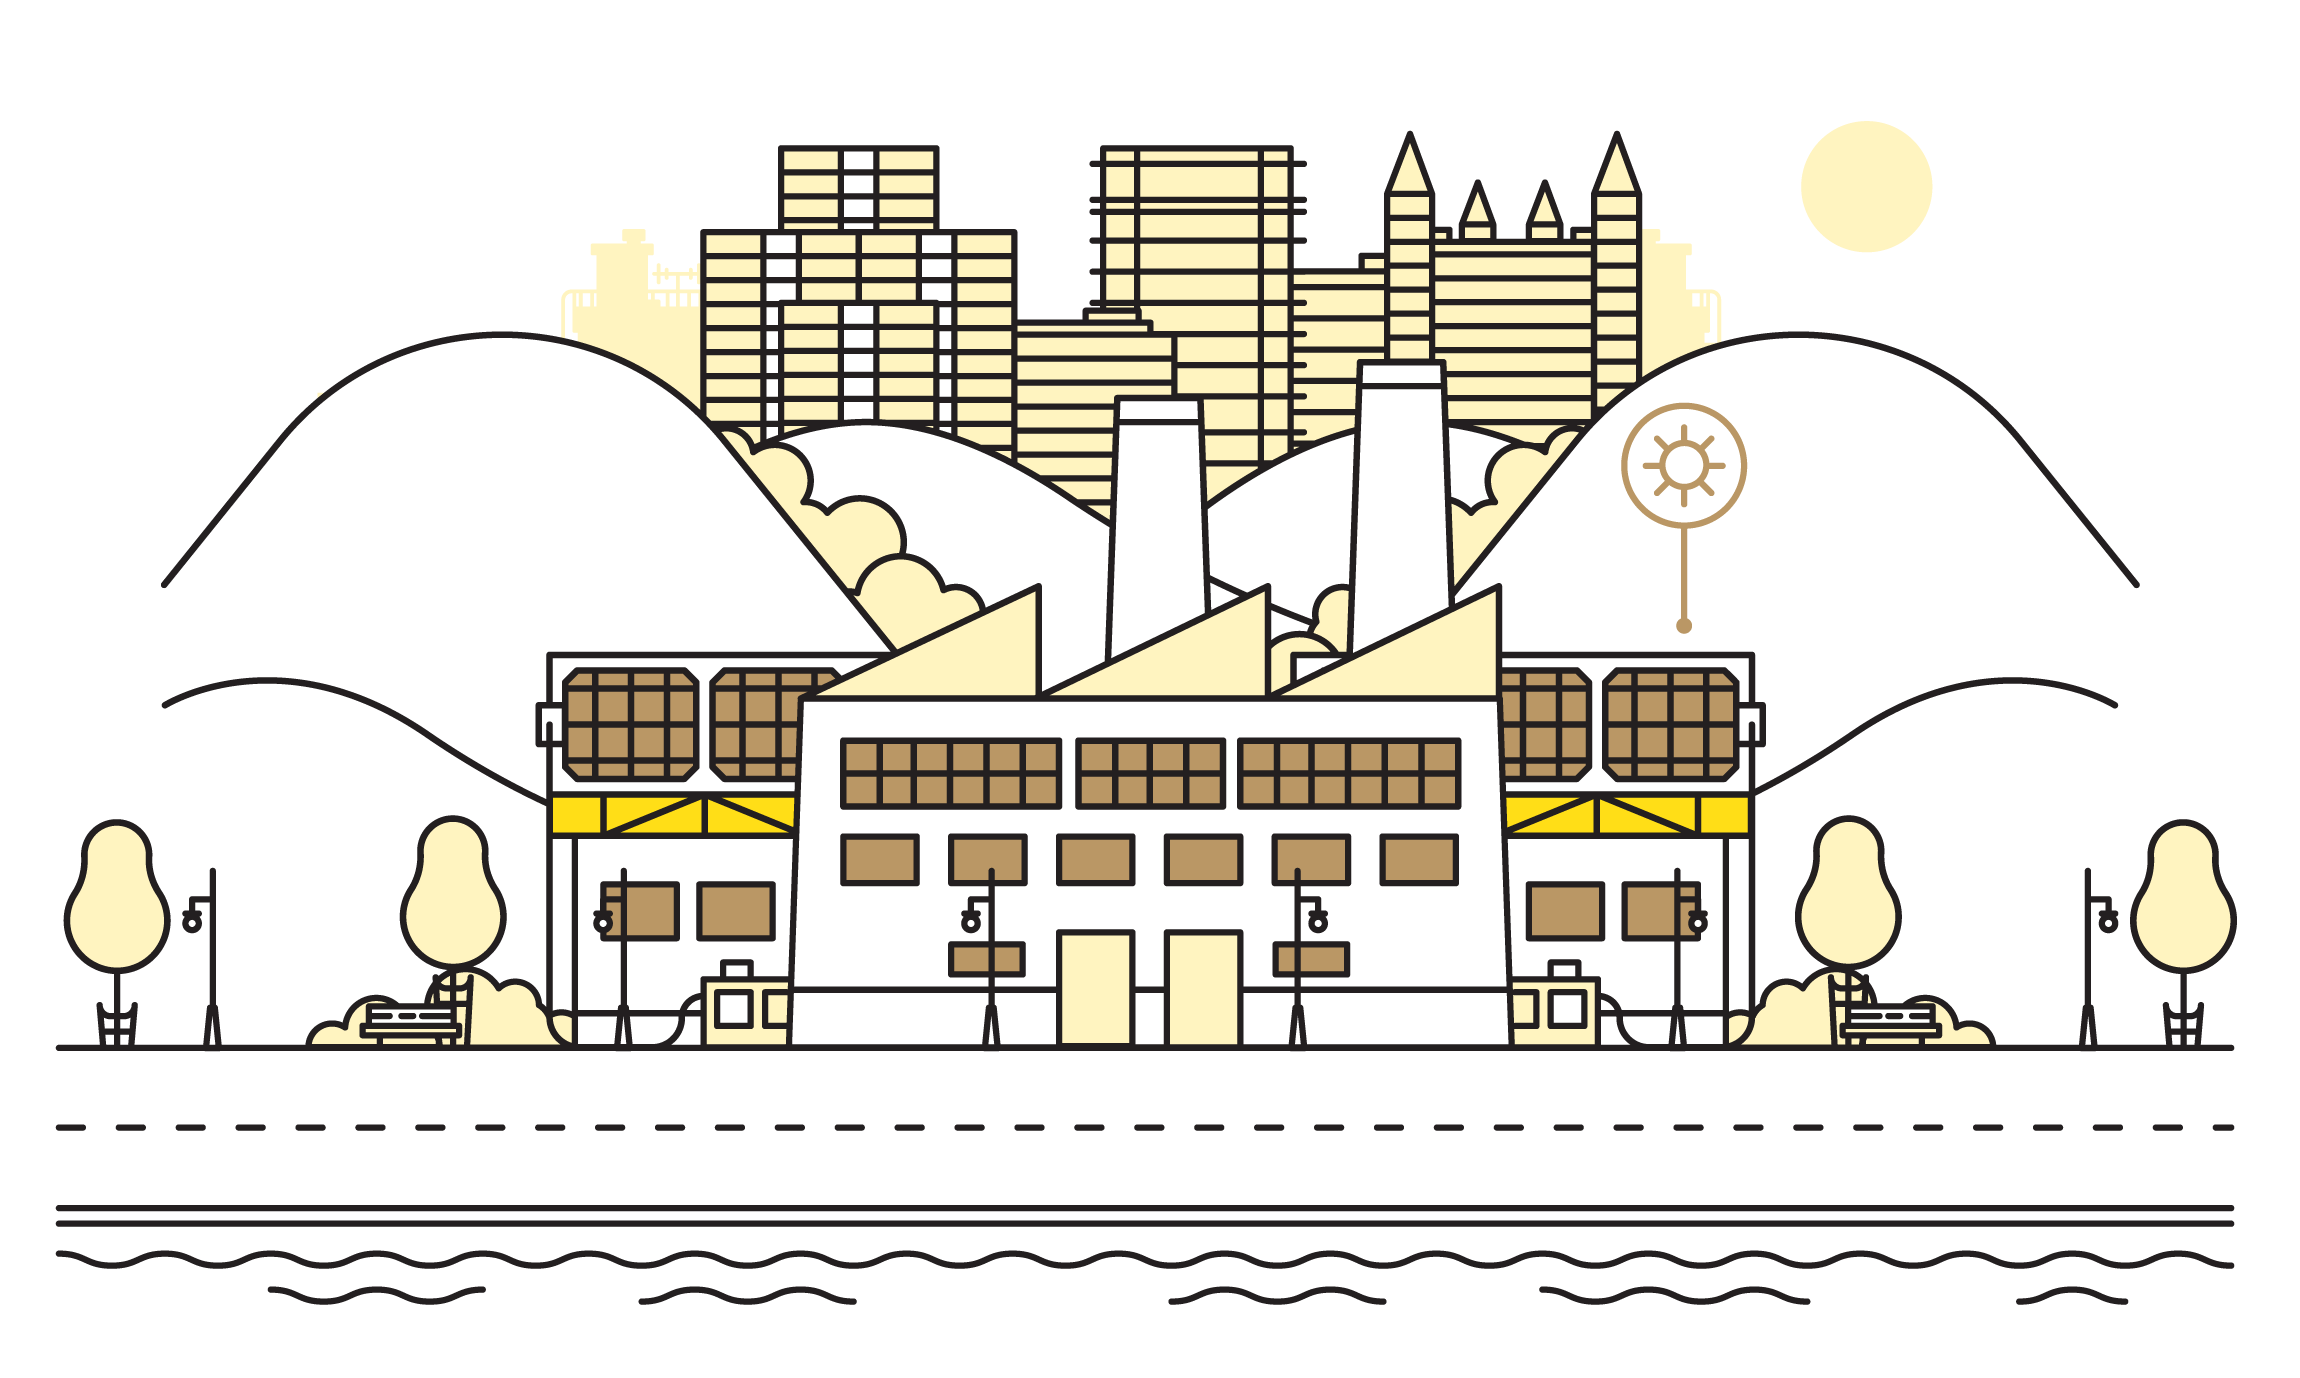 Neighborhood clipart city layout. How seven cities are